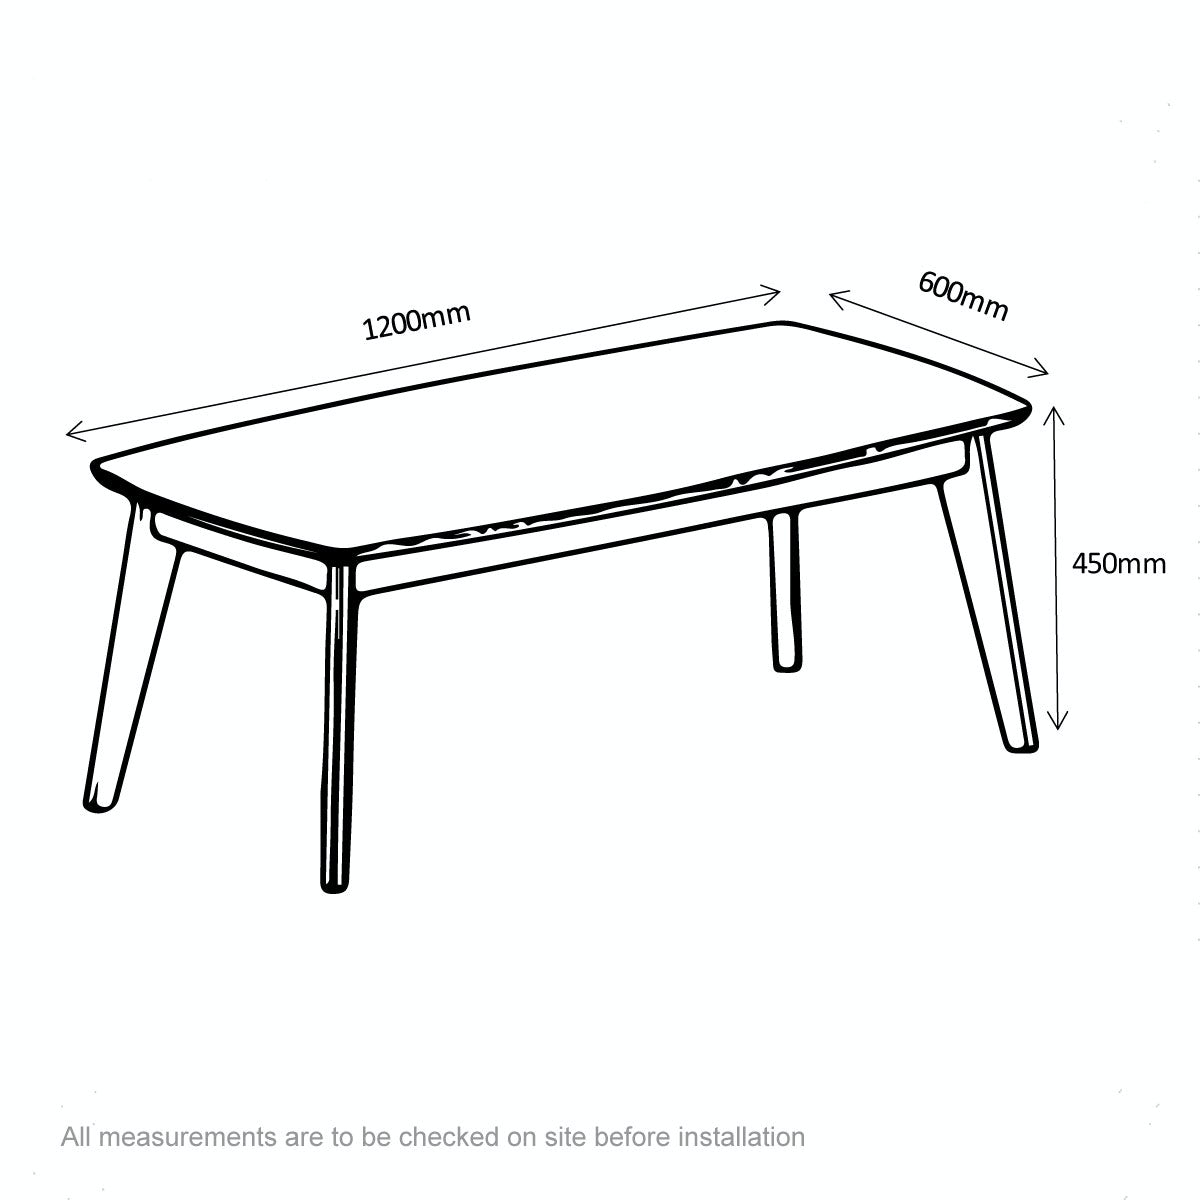 Dimensions for Archer coffee table